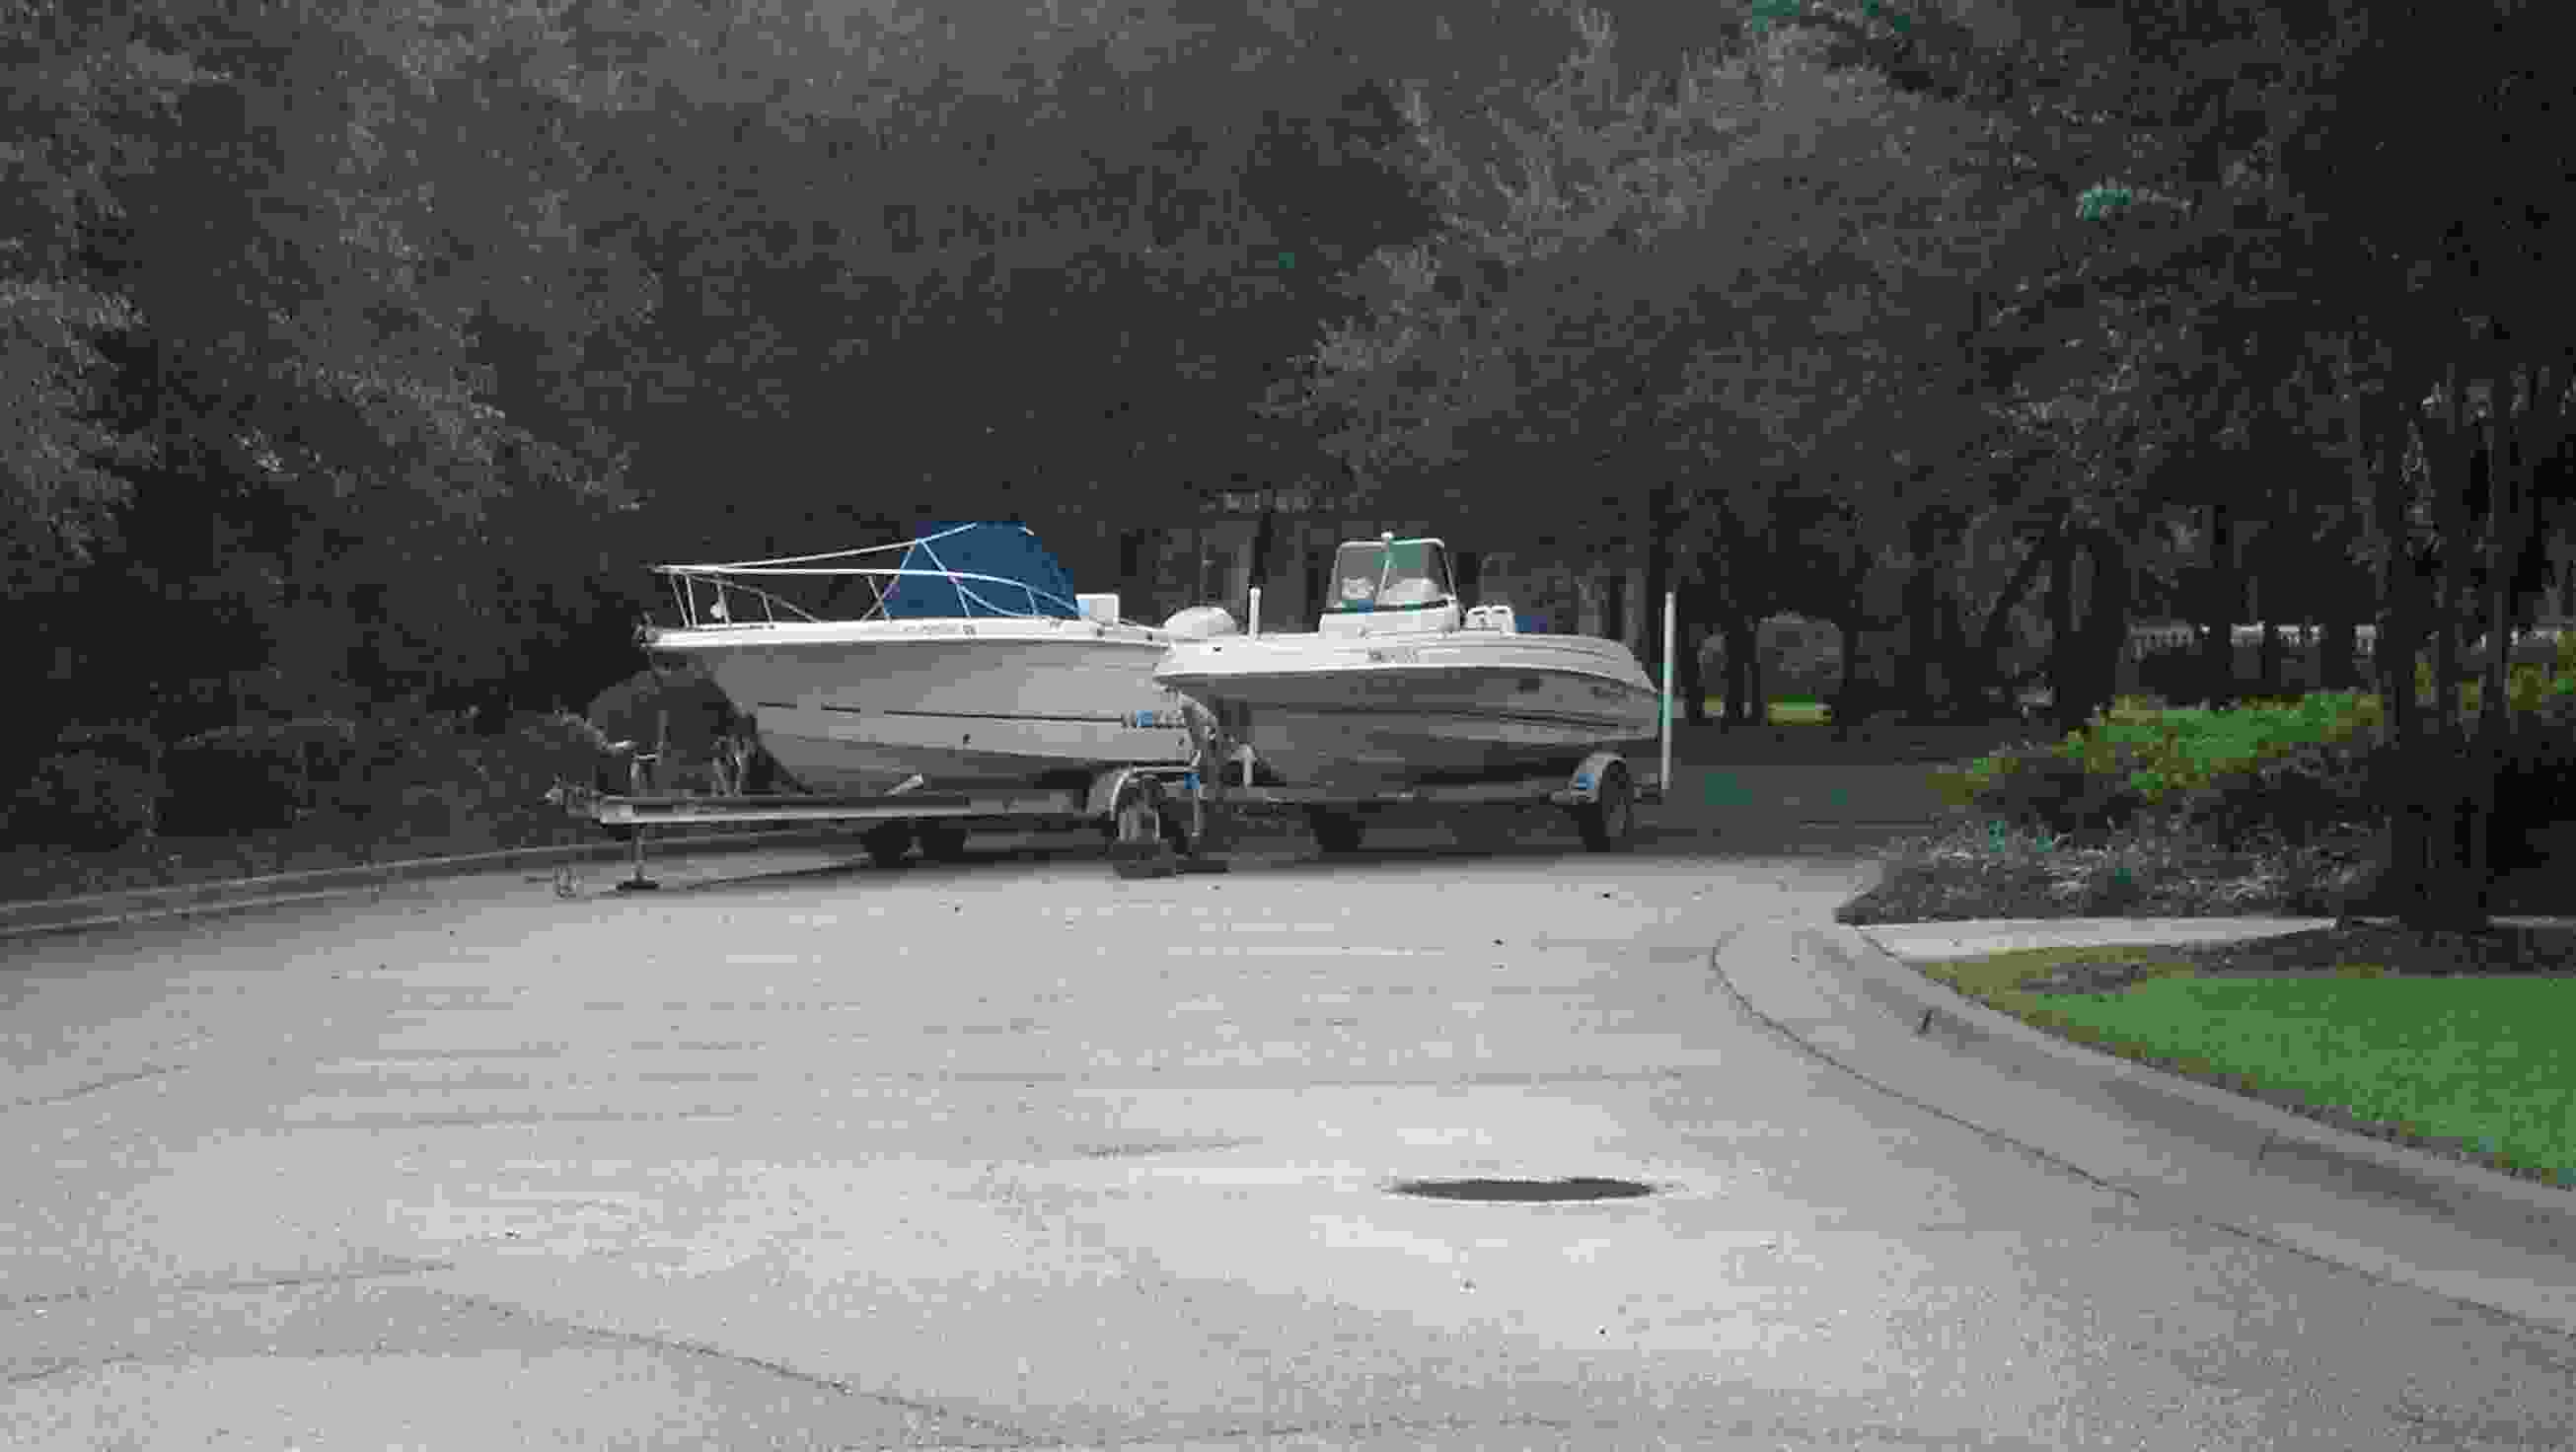 boats in pool parking lot